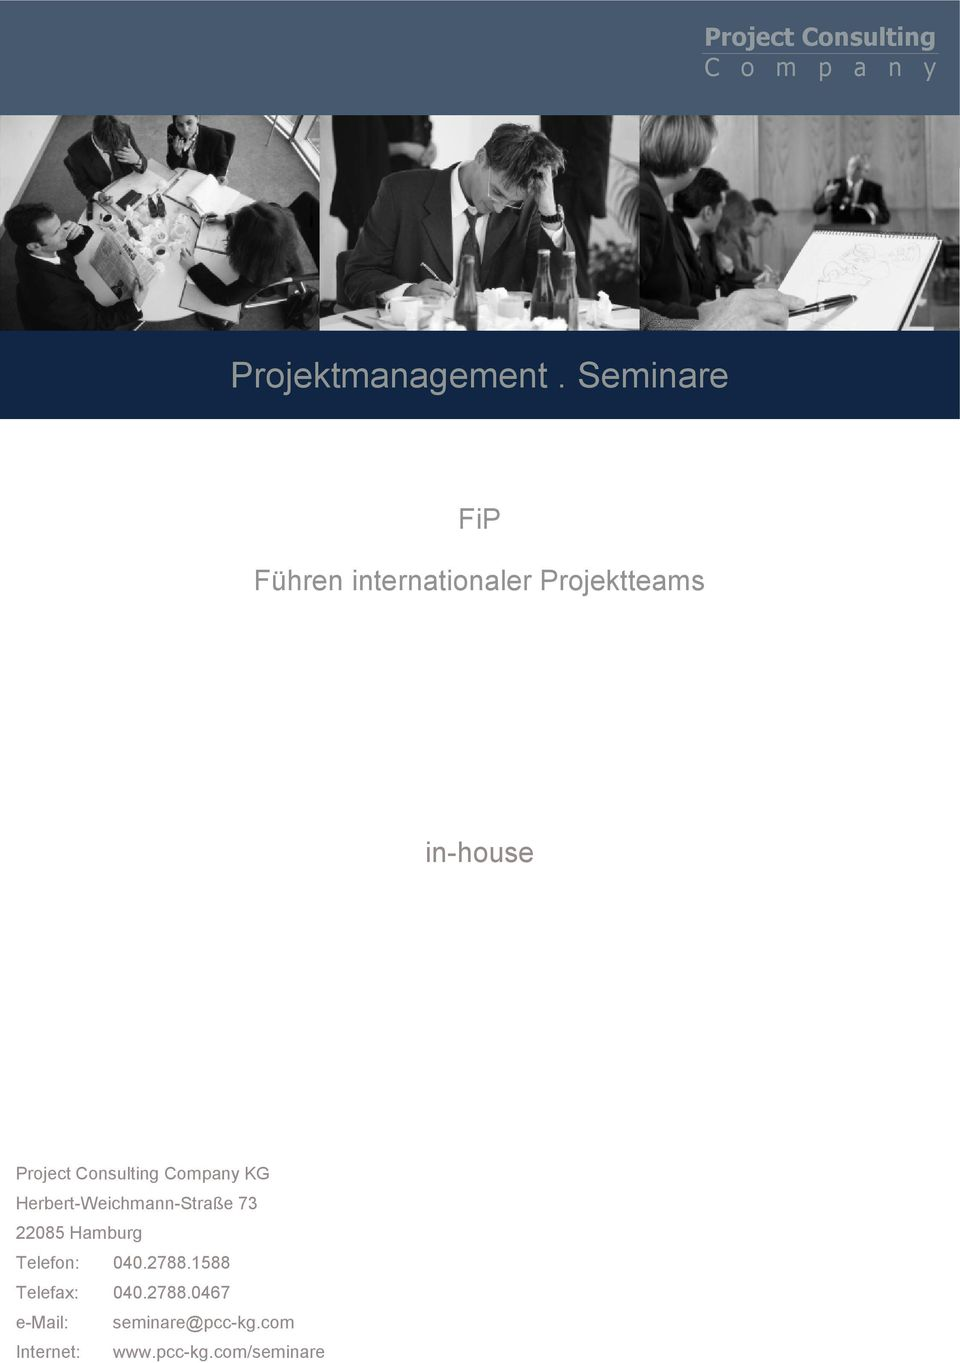 Project Consulting Company KG Herbert-Weichmann-Straße 73 22085